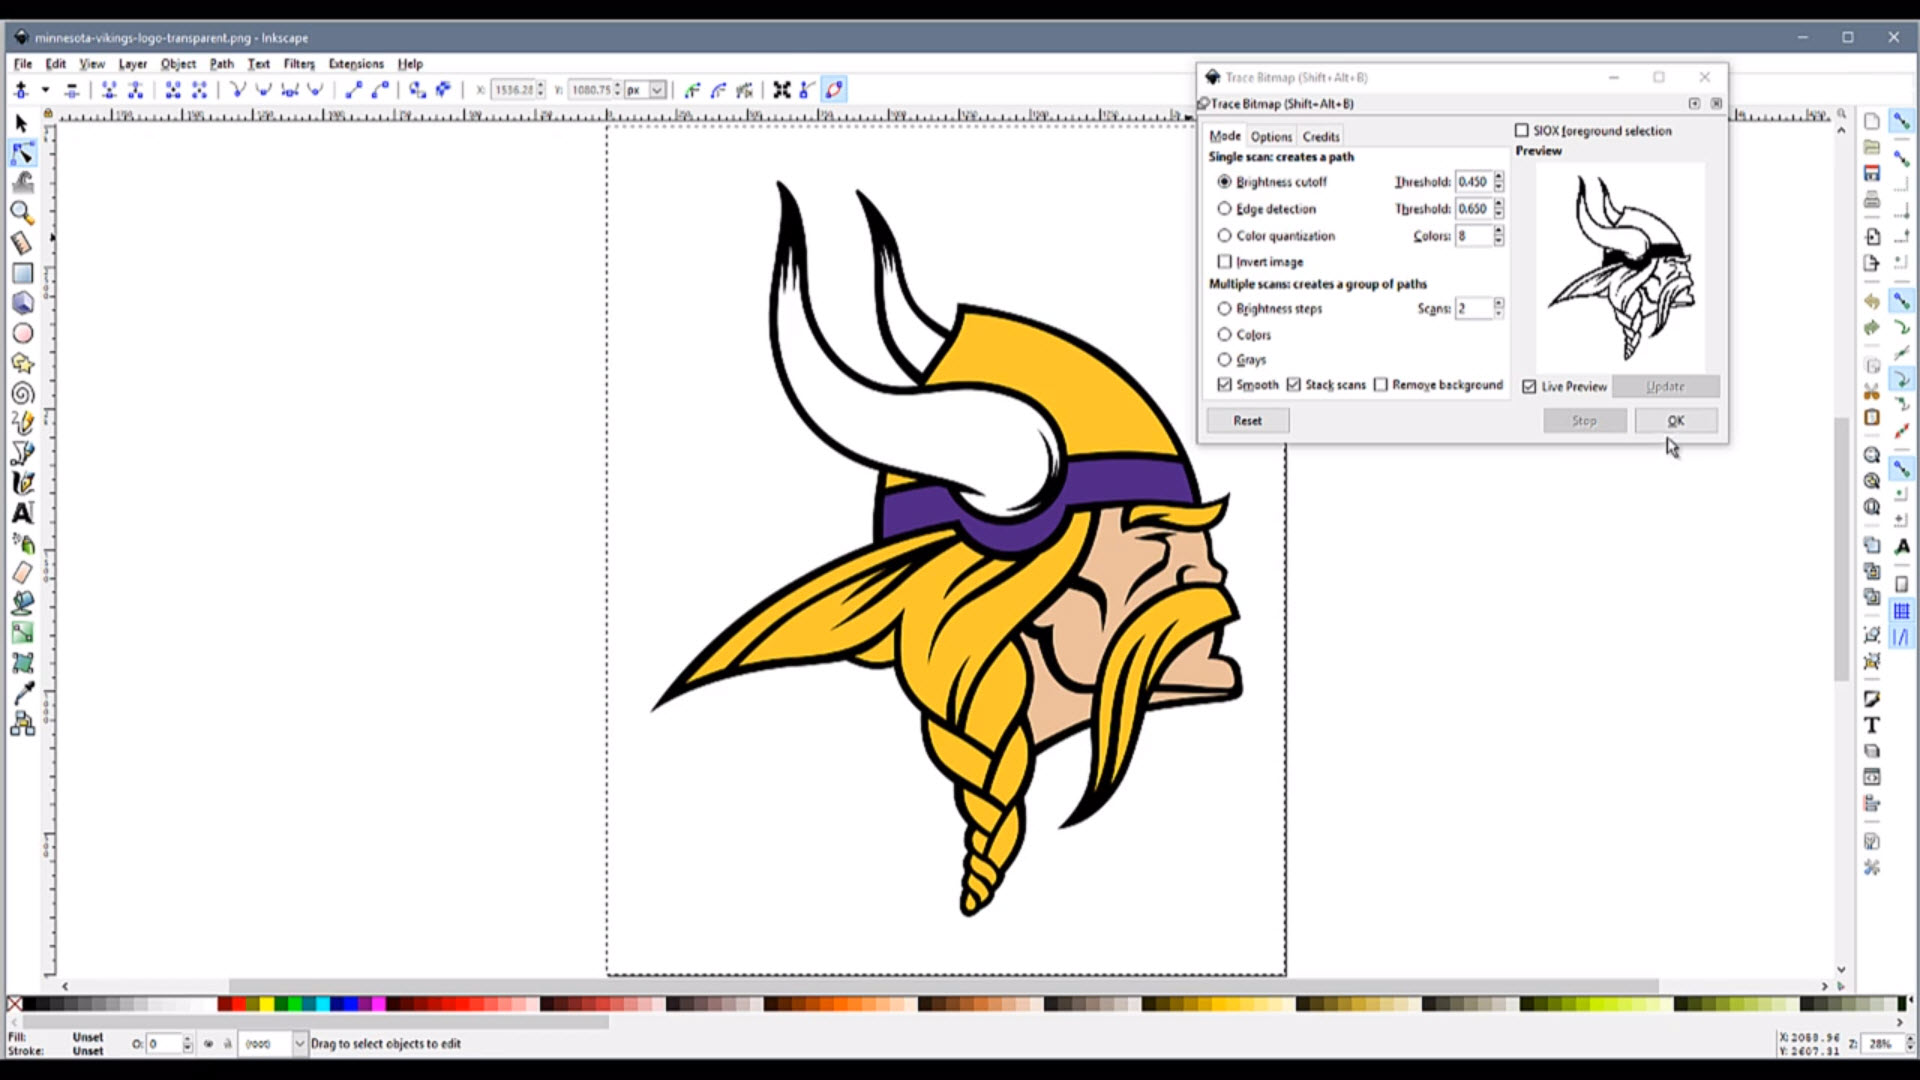 How to Convert an Image File to DXF